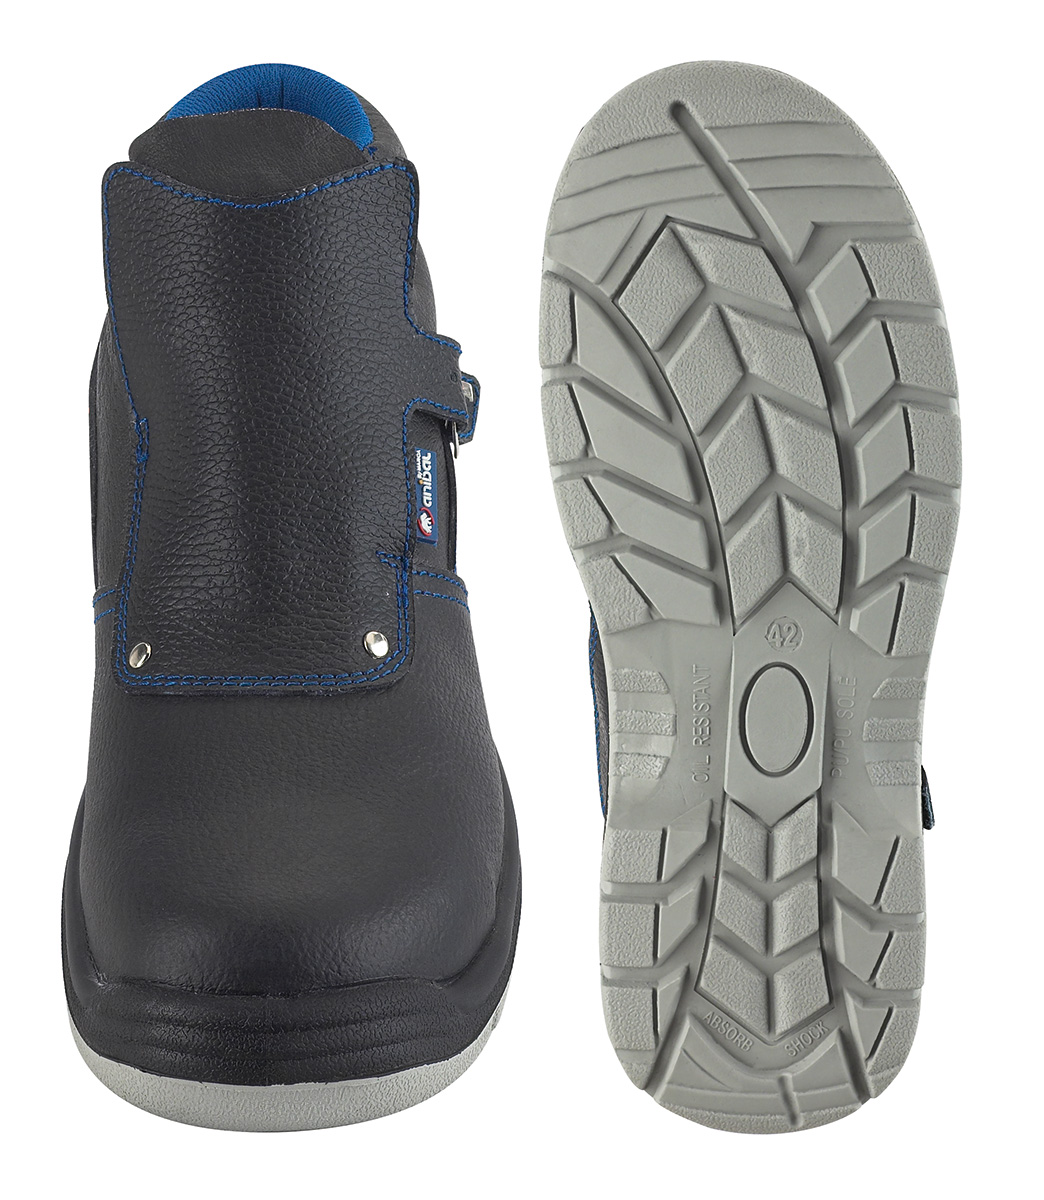 ANIBAL SAFETY SHOES – 1688-BSO